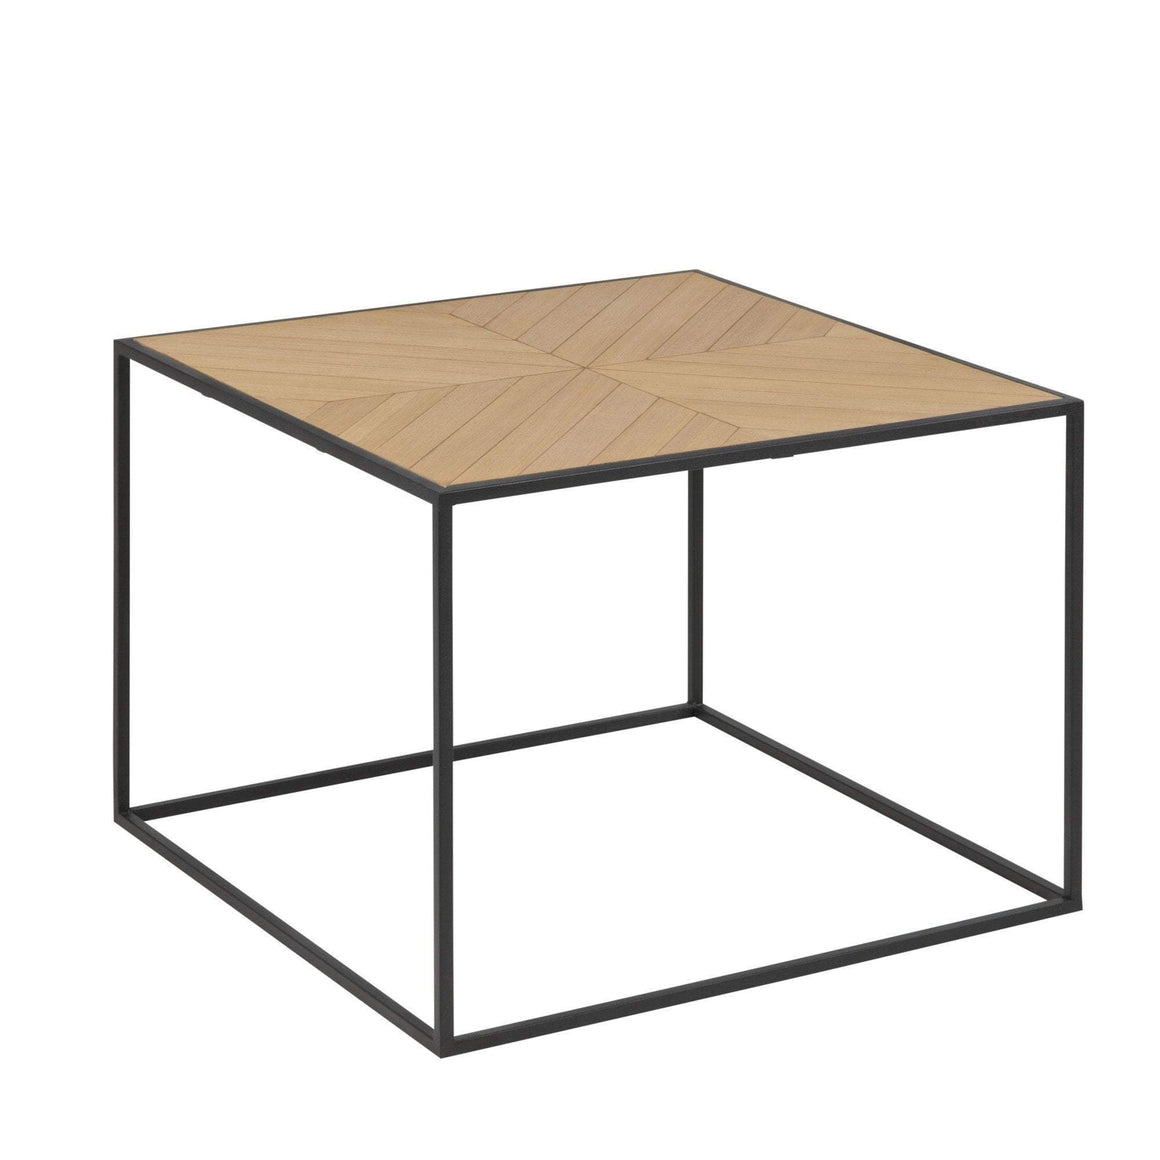 SQUARE TIMBER COFFEE TABLE W/ IRON BASE